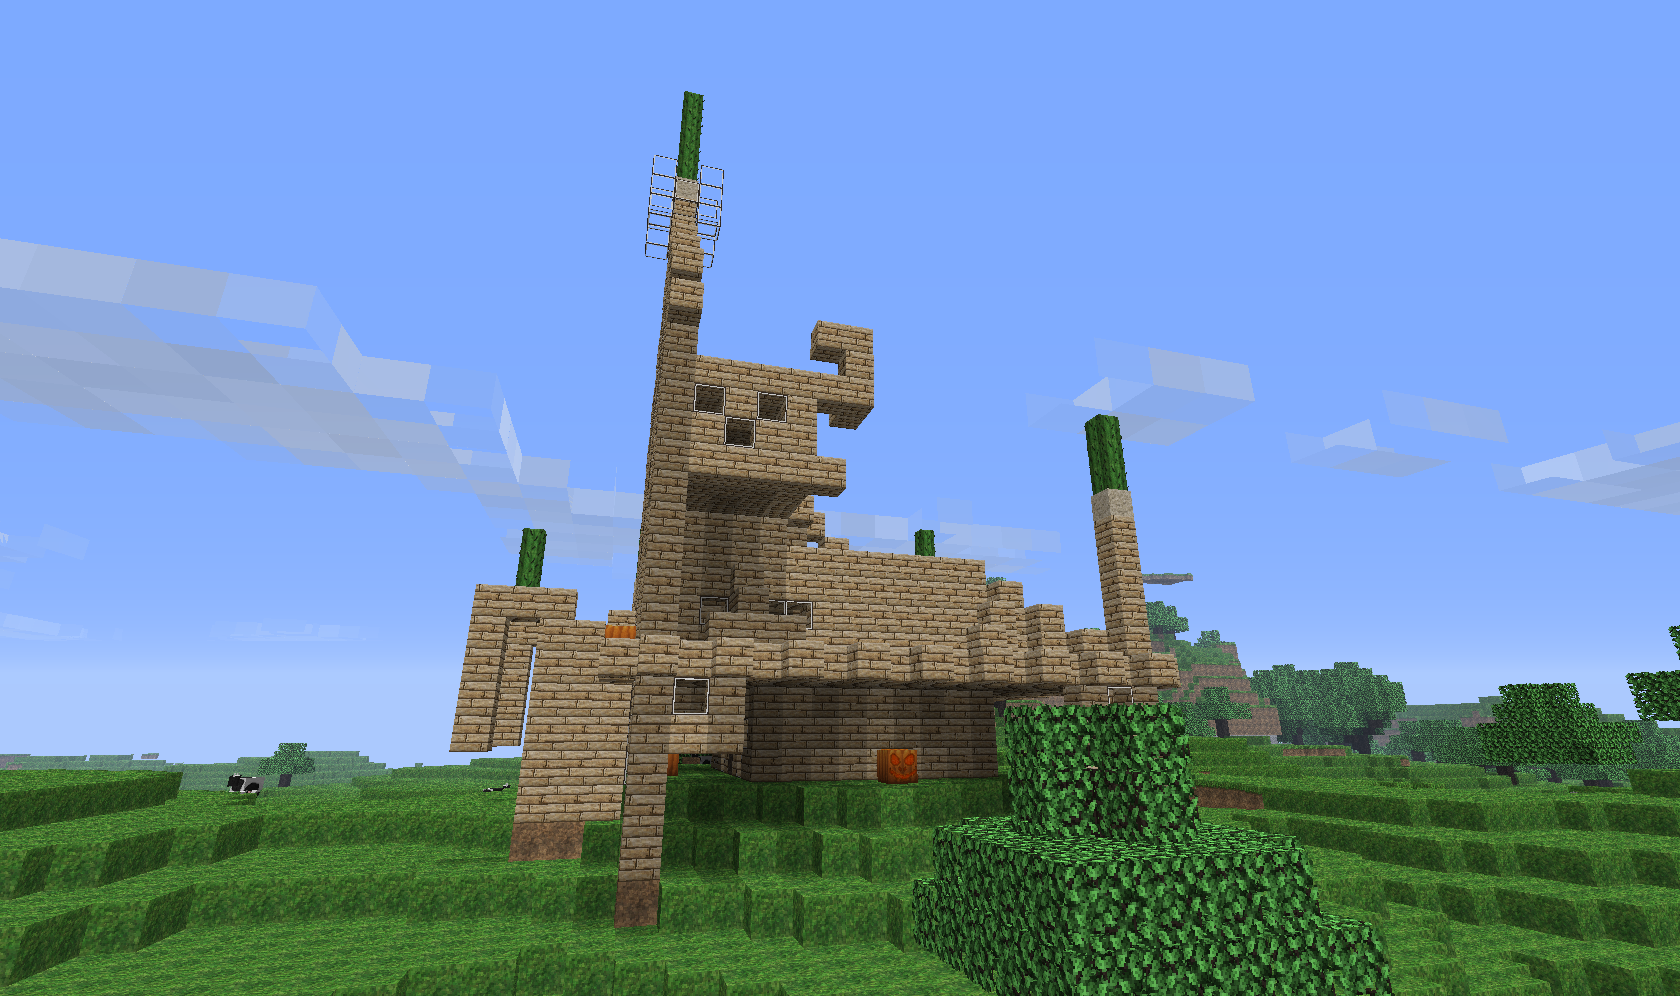 ... media Weirdest house design in history of minecraft (view original